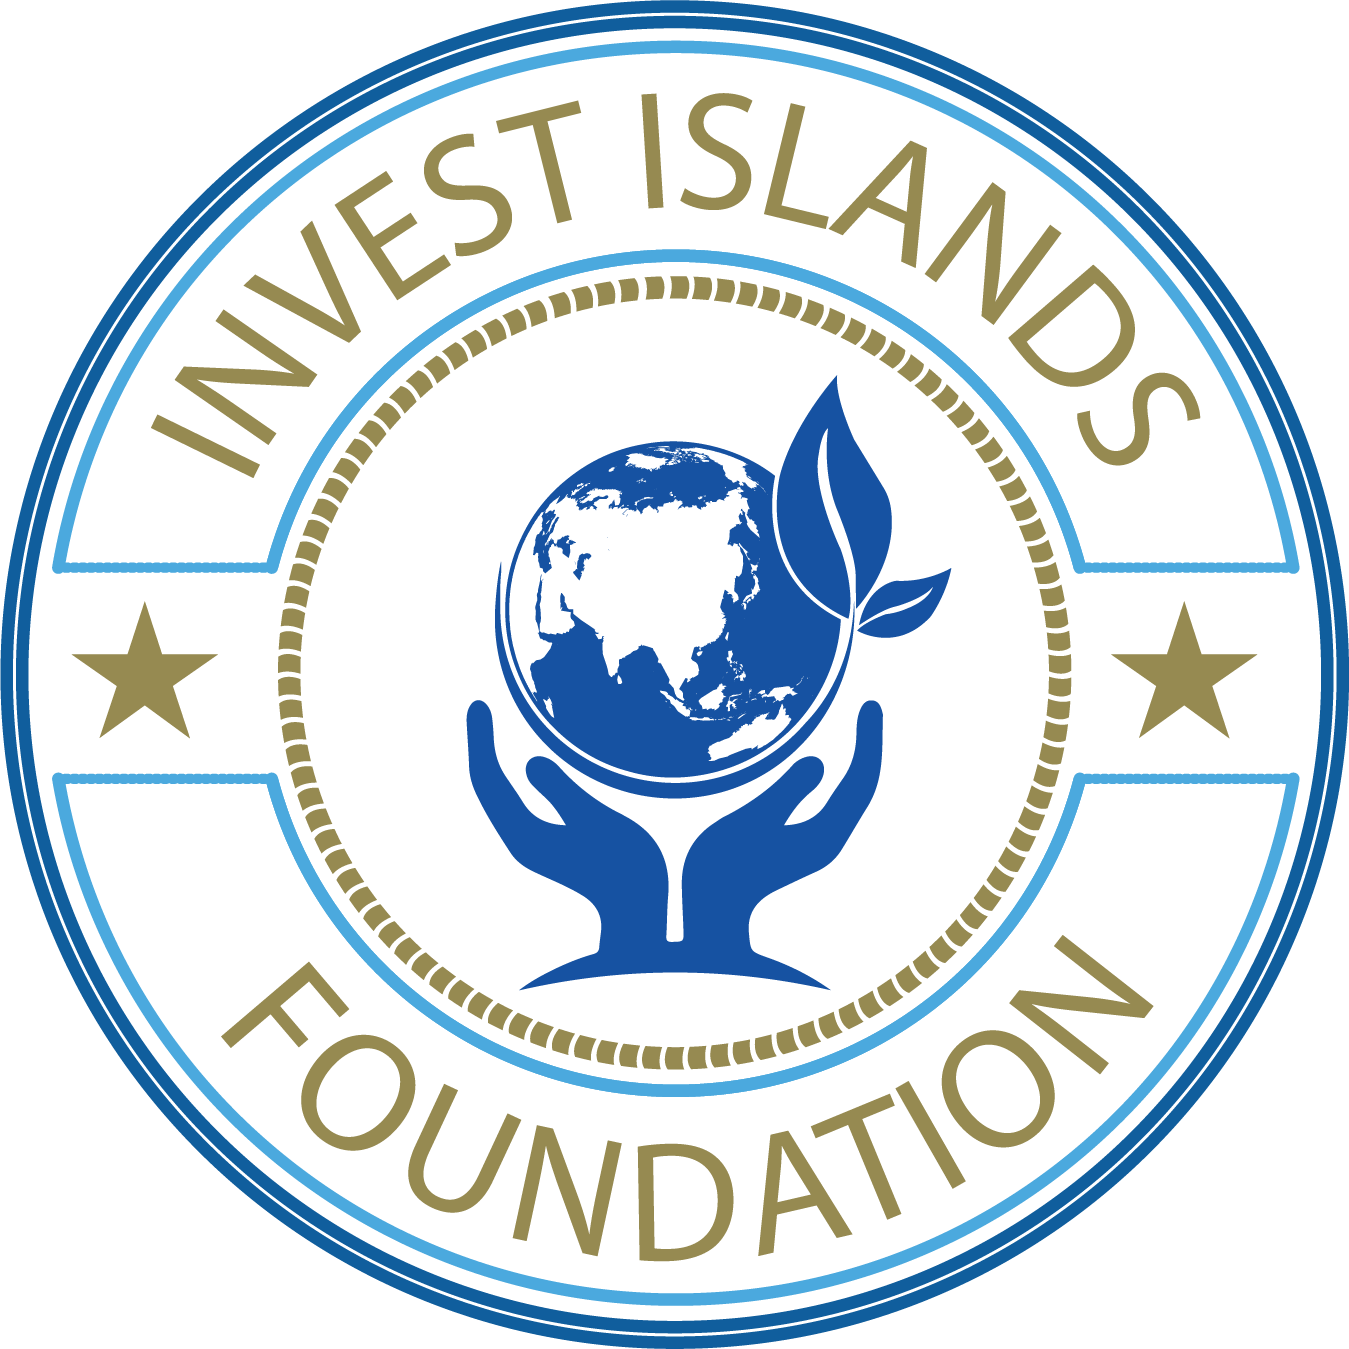 Invest Islands Foundation -Home